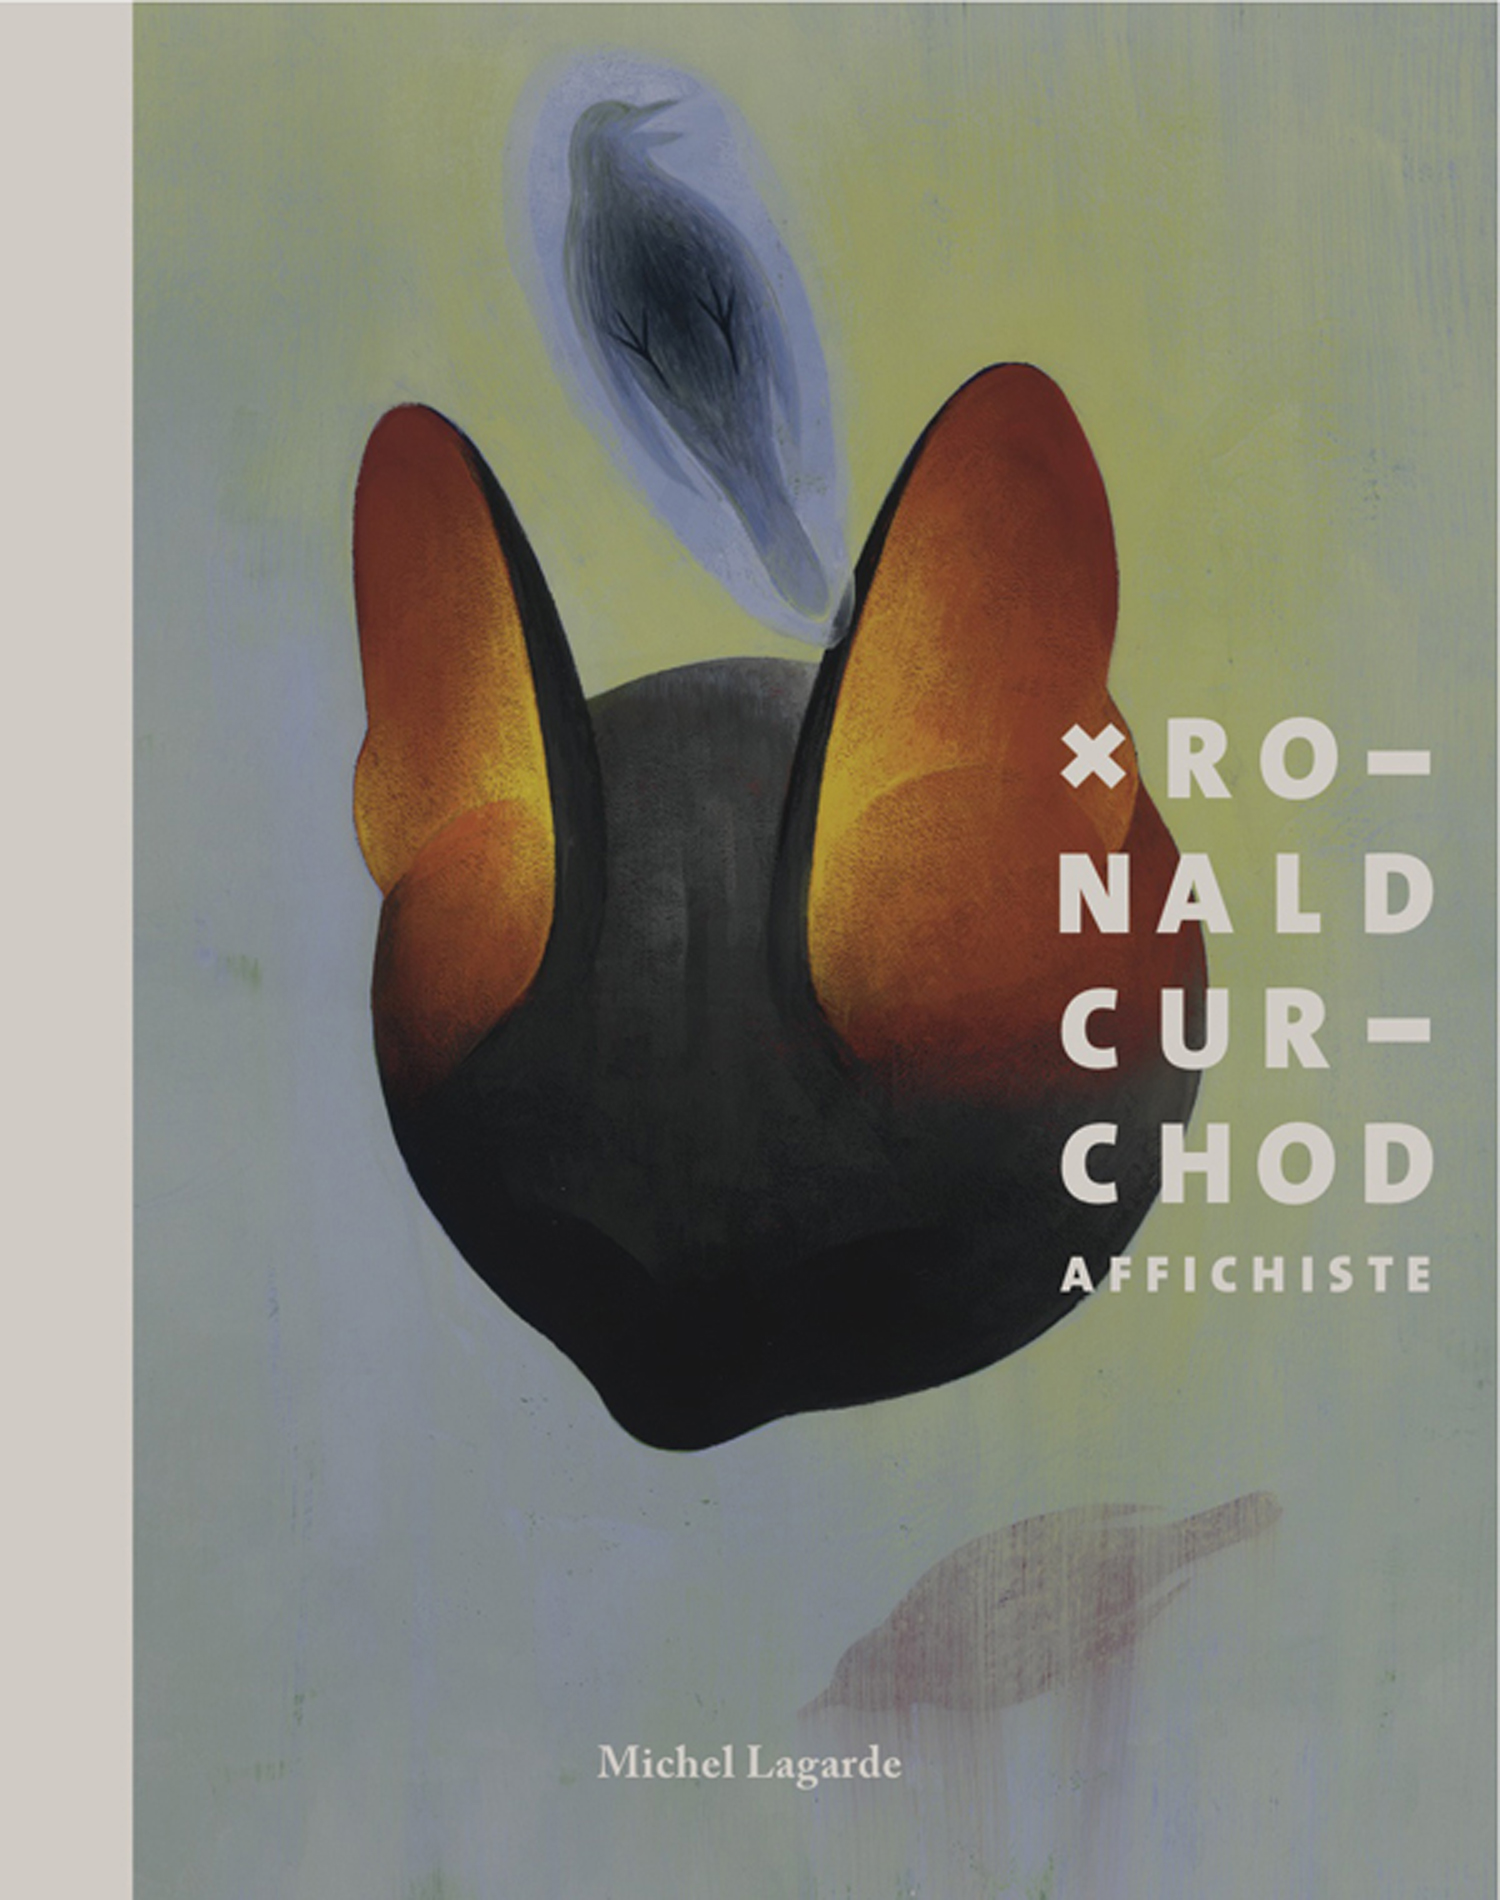 Collectif | Ronald Curchod Affichiste |